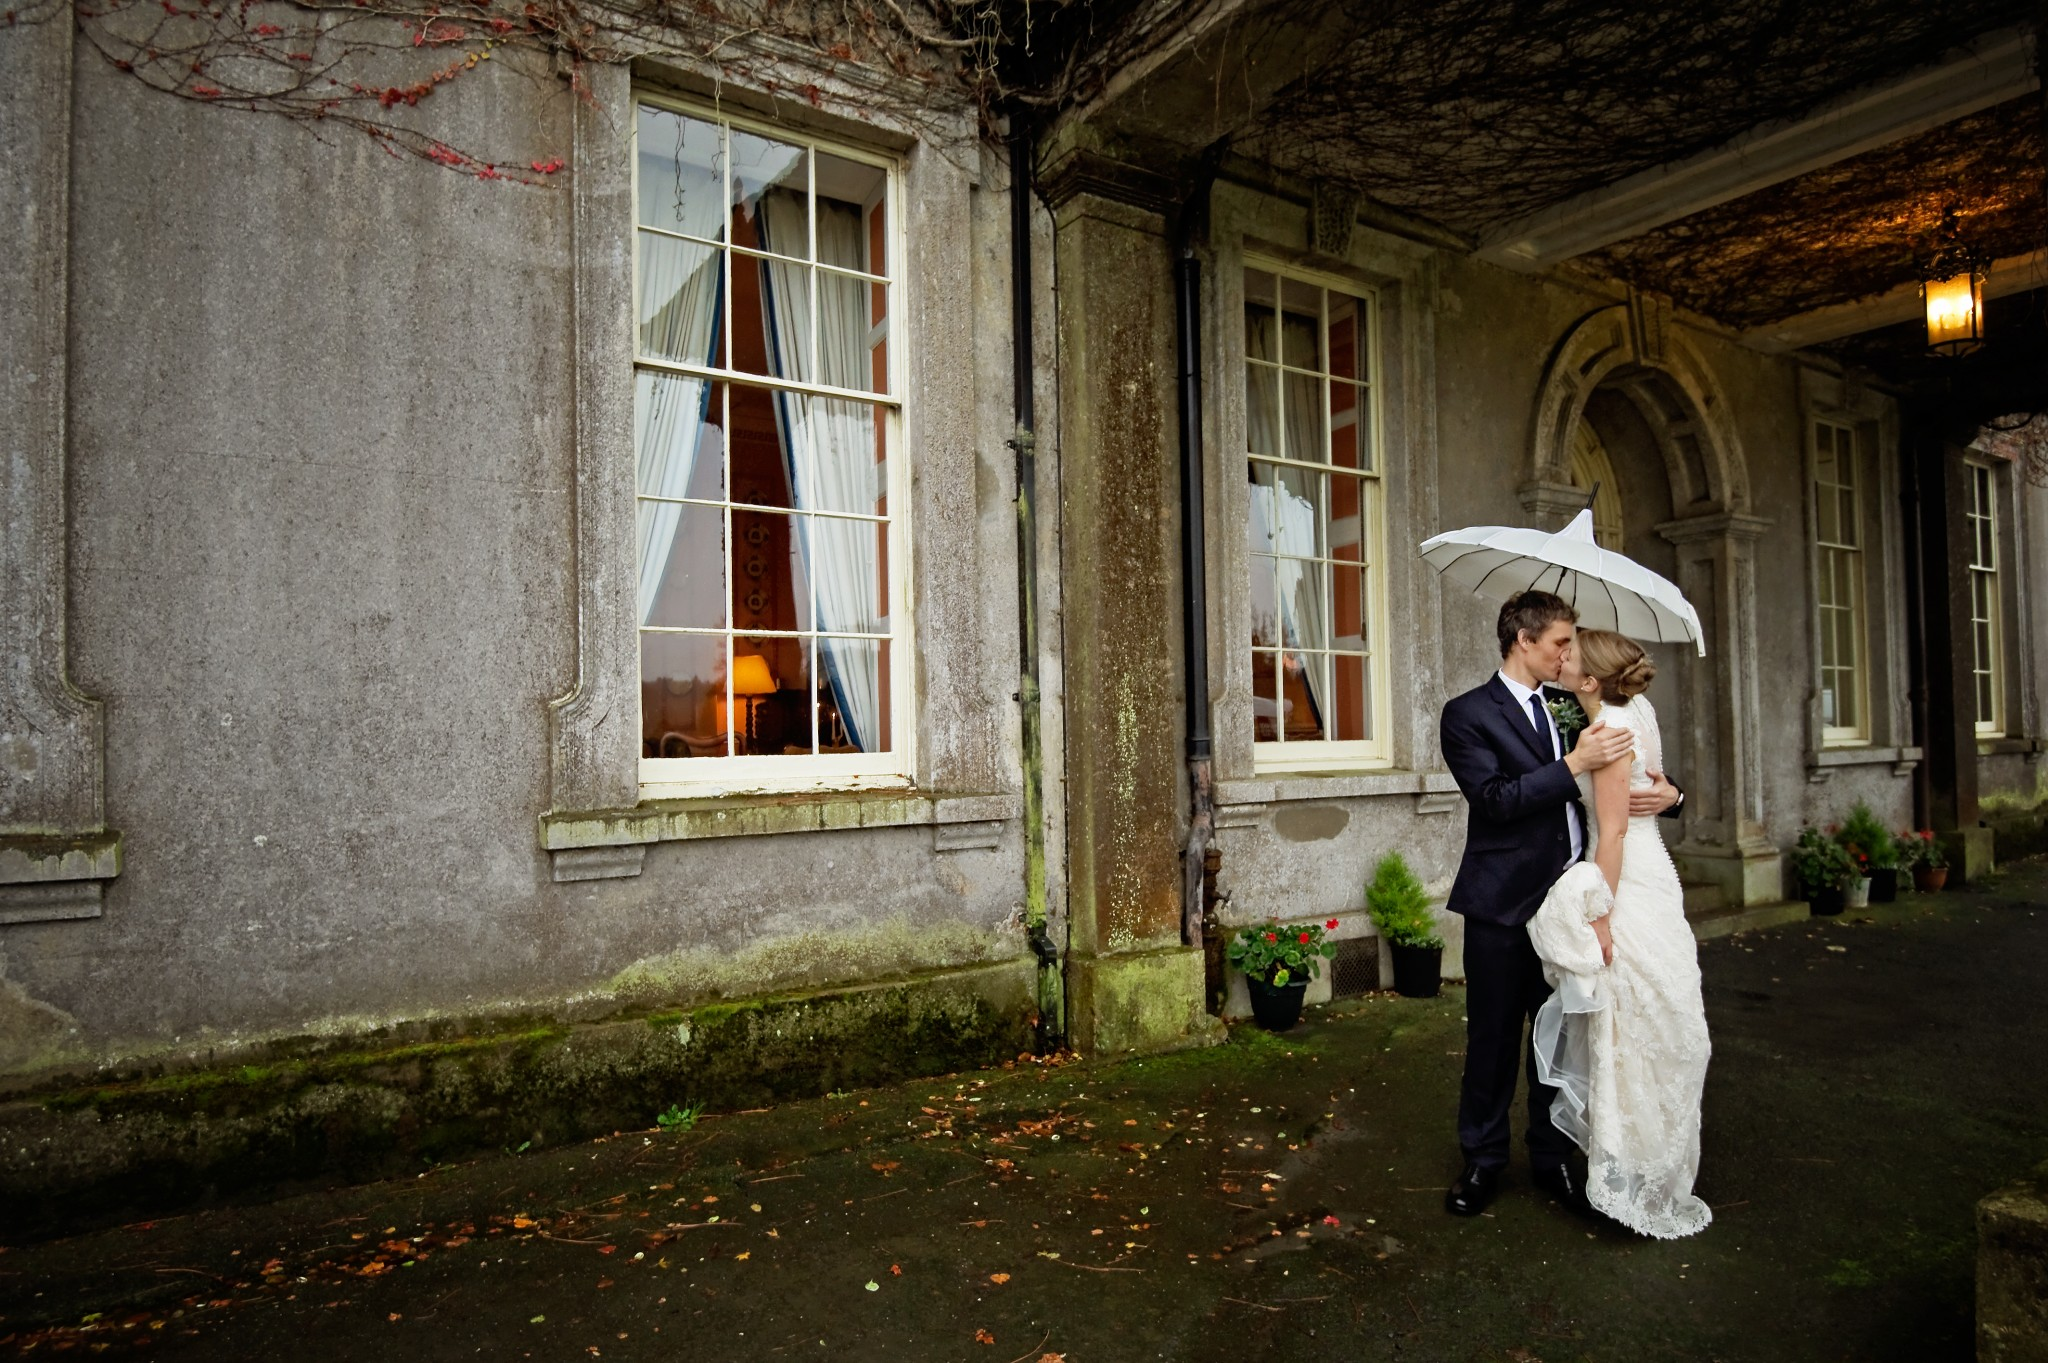 Bride and groom kiss outside North Devon country House in the rain.